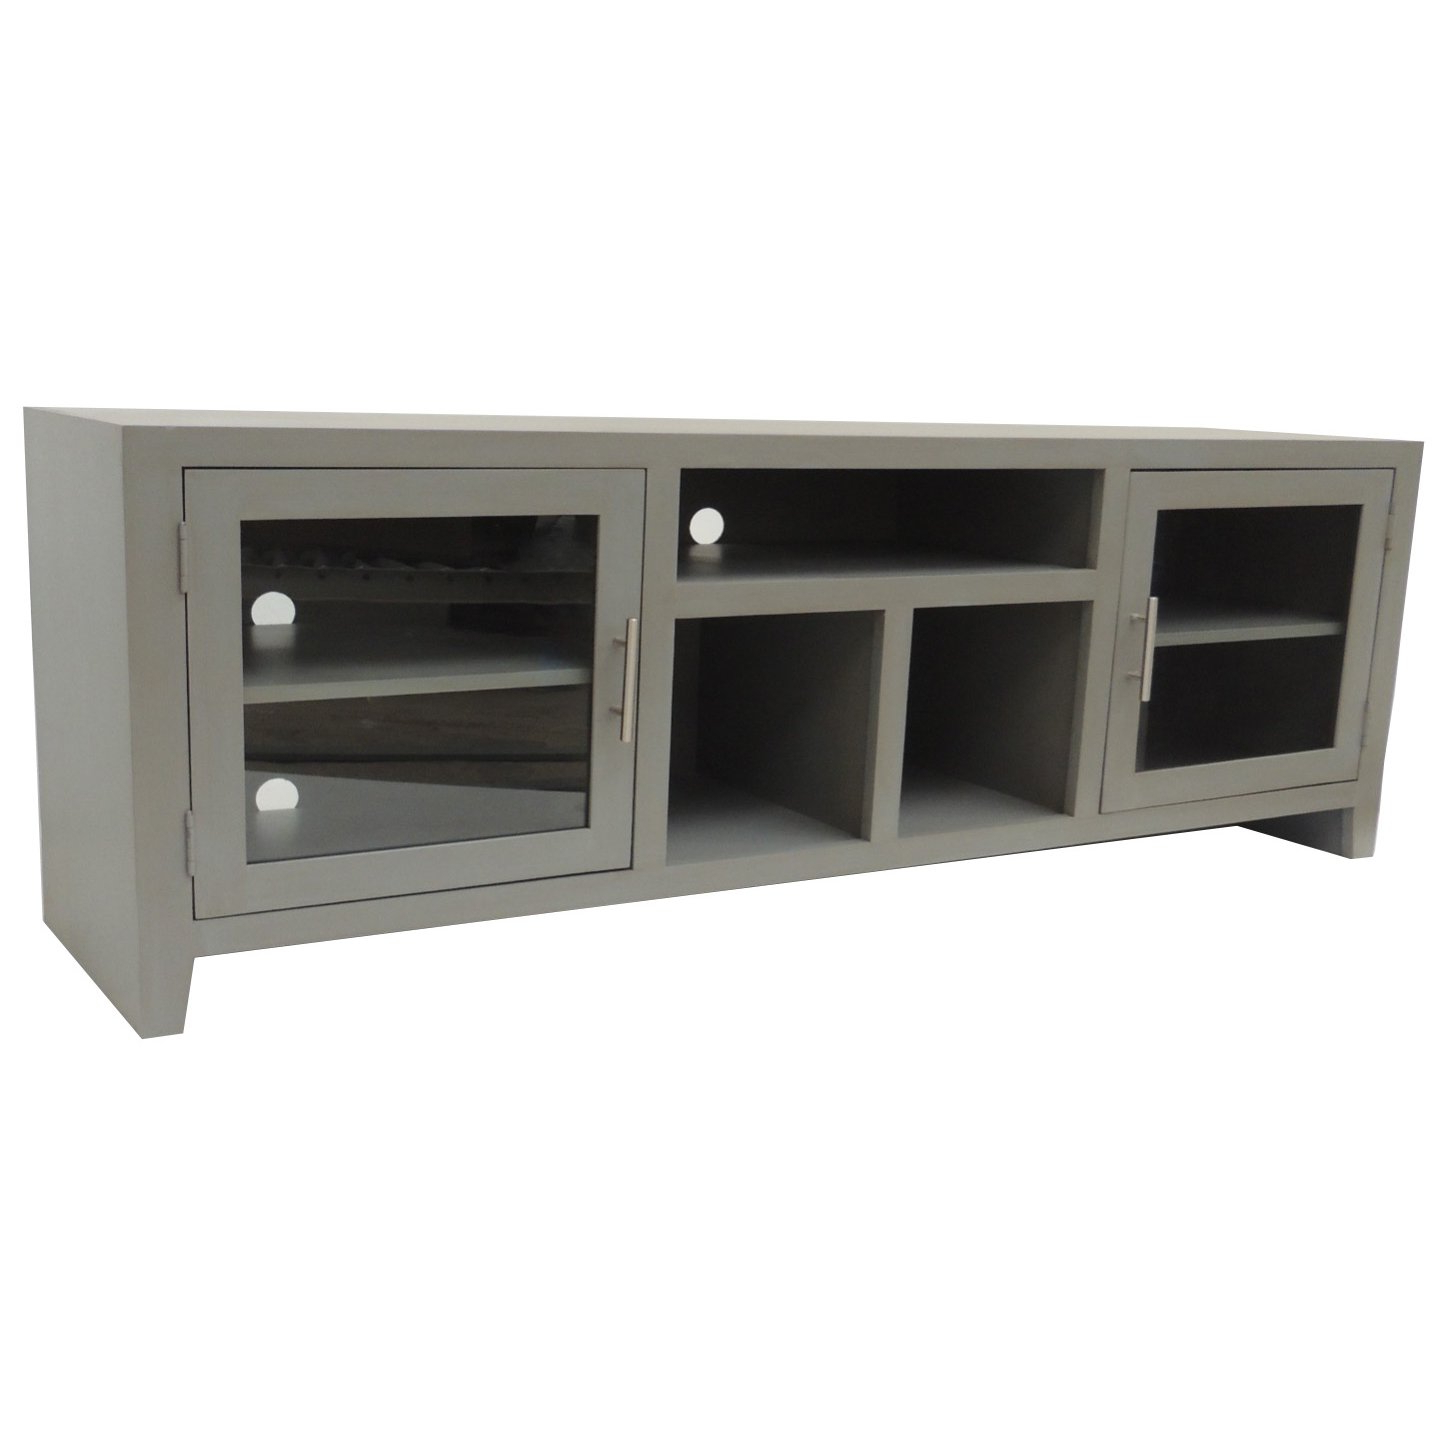 65 Inch Gray Tv Stand | Rc Willey Furniture Store Within Draper 62 Inch Tv Stands (Gallery 3 of 20)